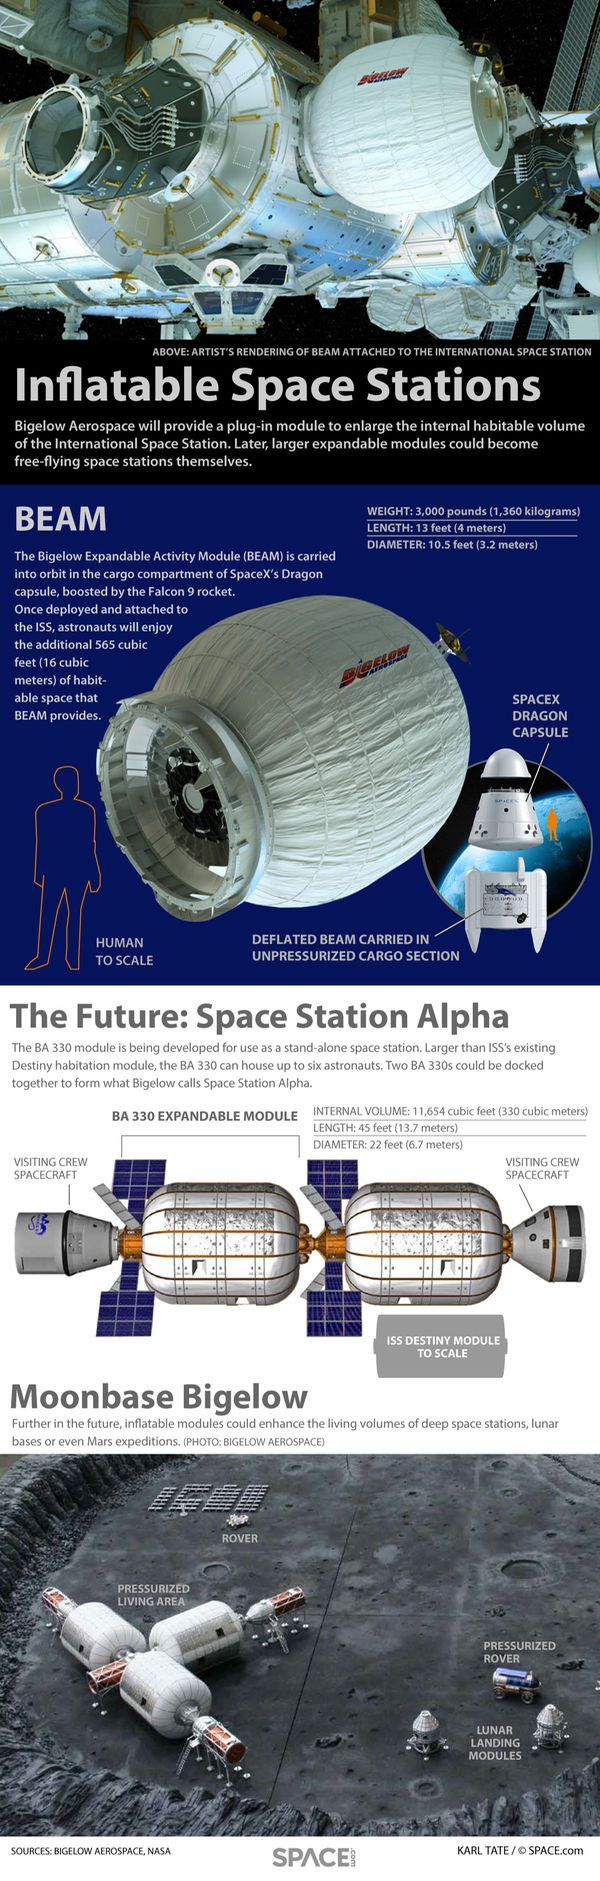 the space shuttle program technologies and accomplishments - photo #31